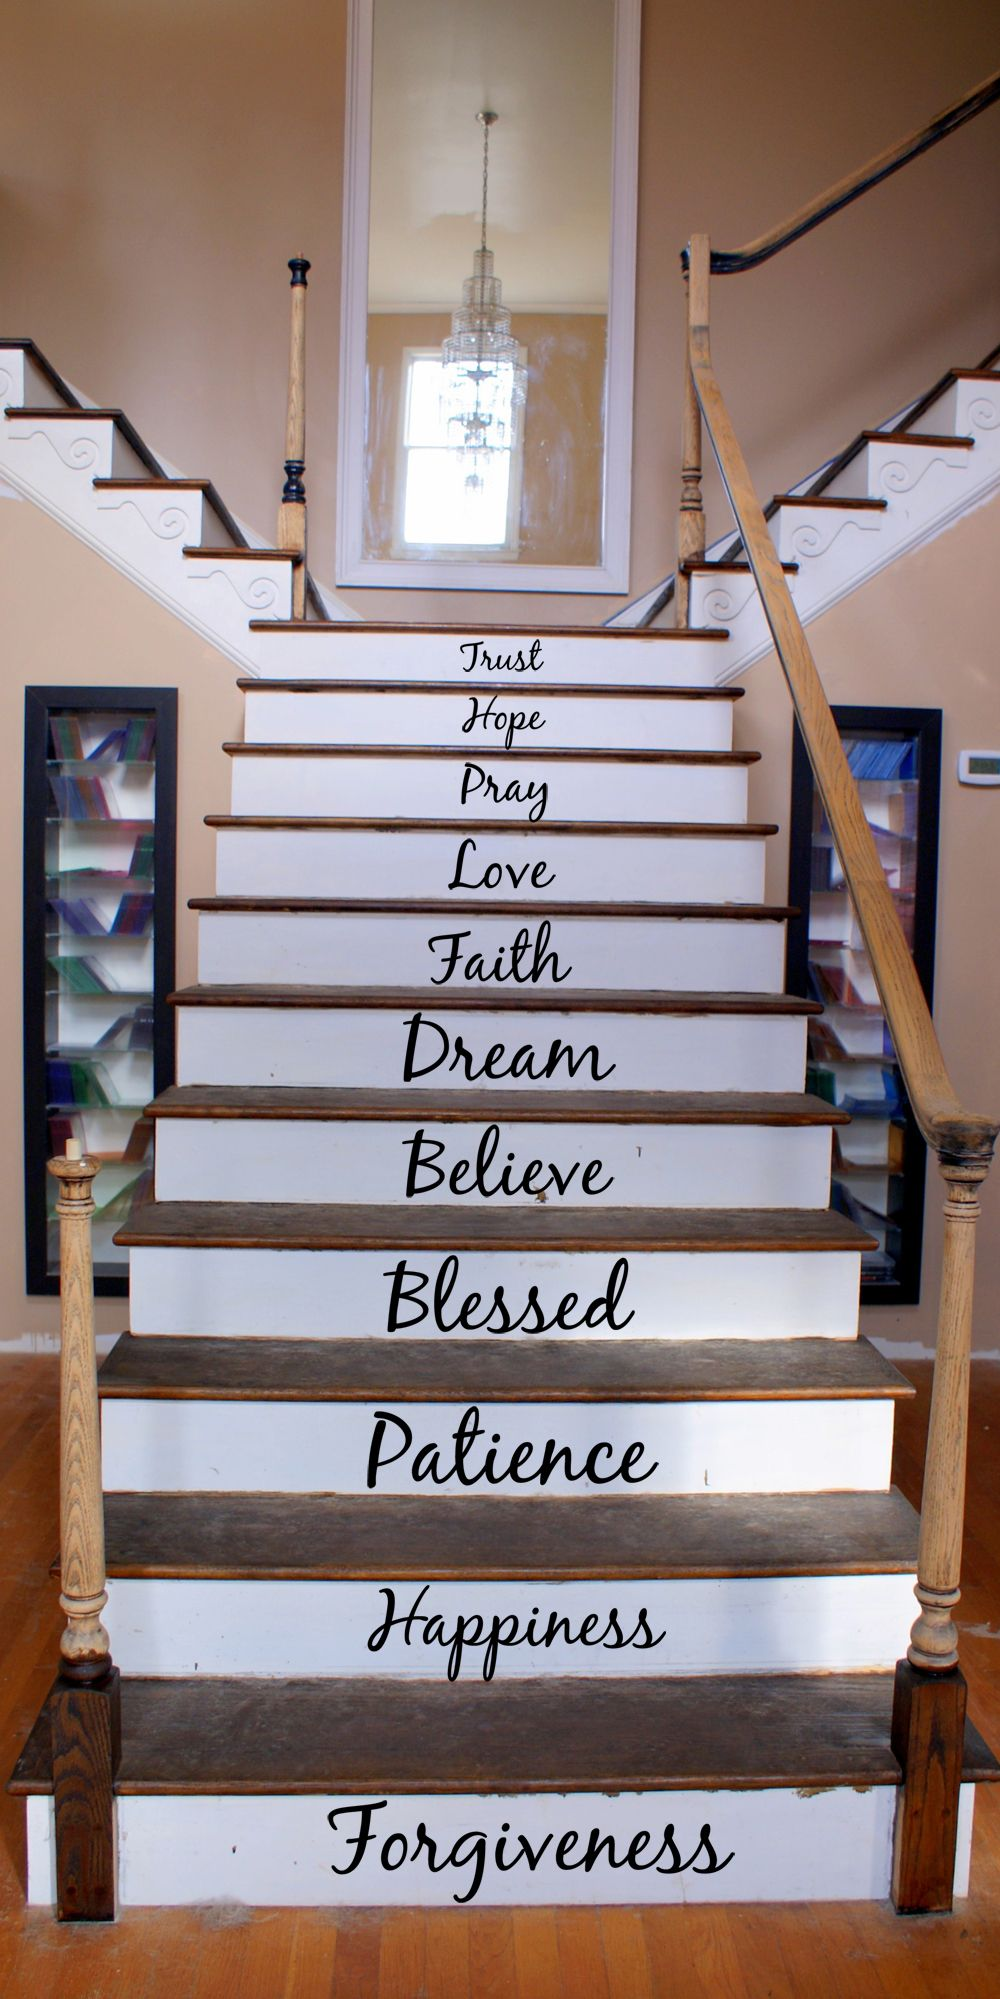 Cursive Inspirational Words Home Stairs Design Stairs Design Stair Renovation